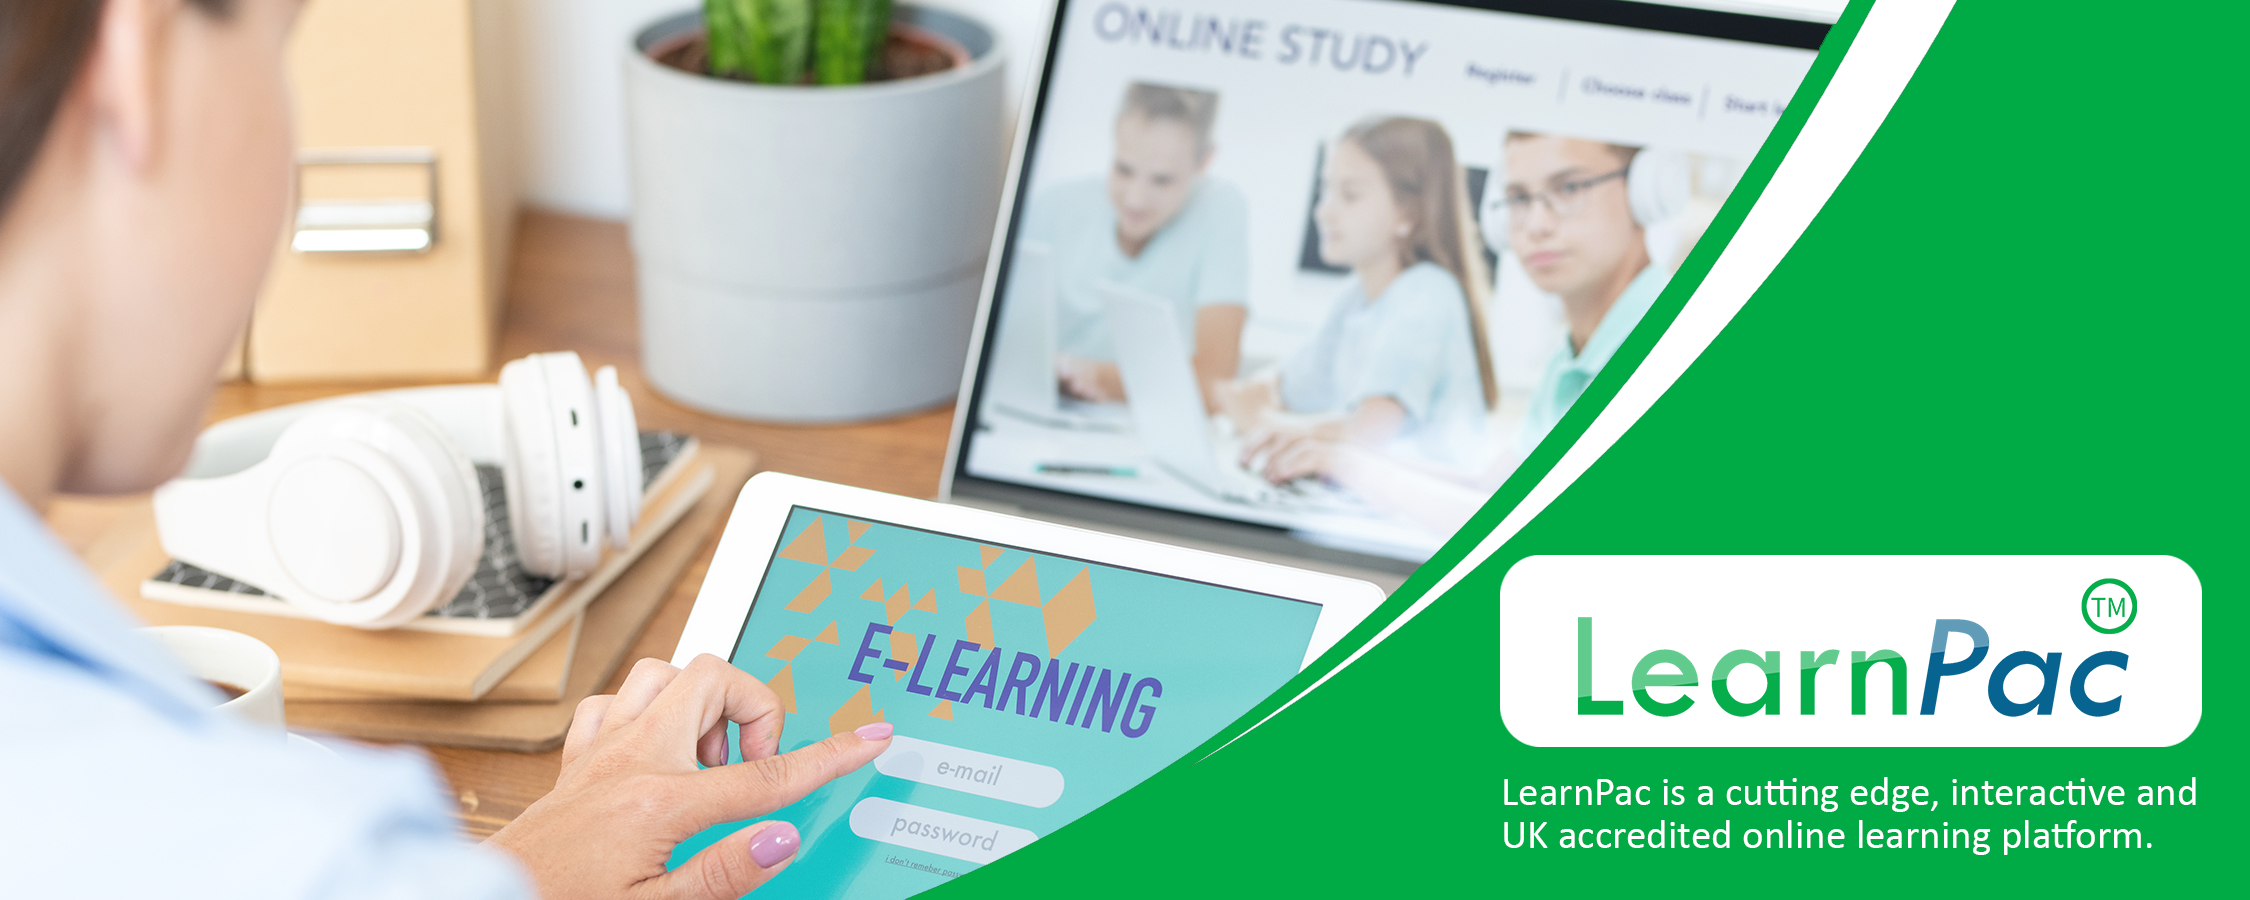 Tissue Viability - Online Learning Courses - E-Learning Courses - LearnPac Systems UK -